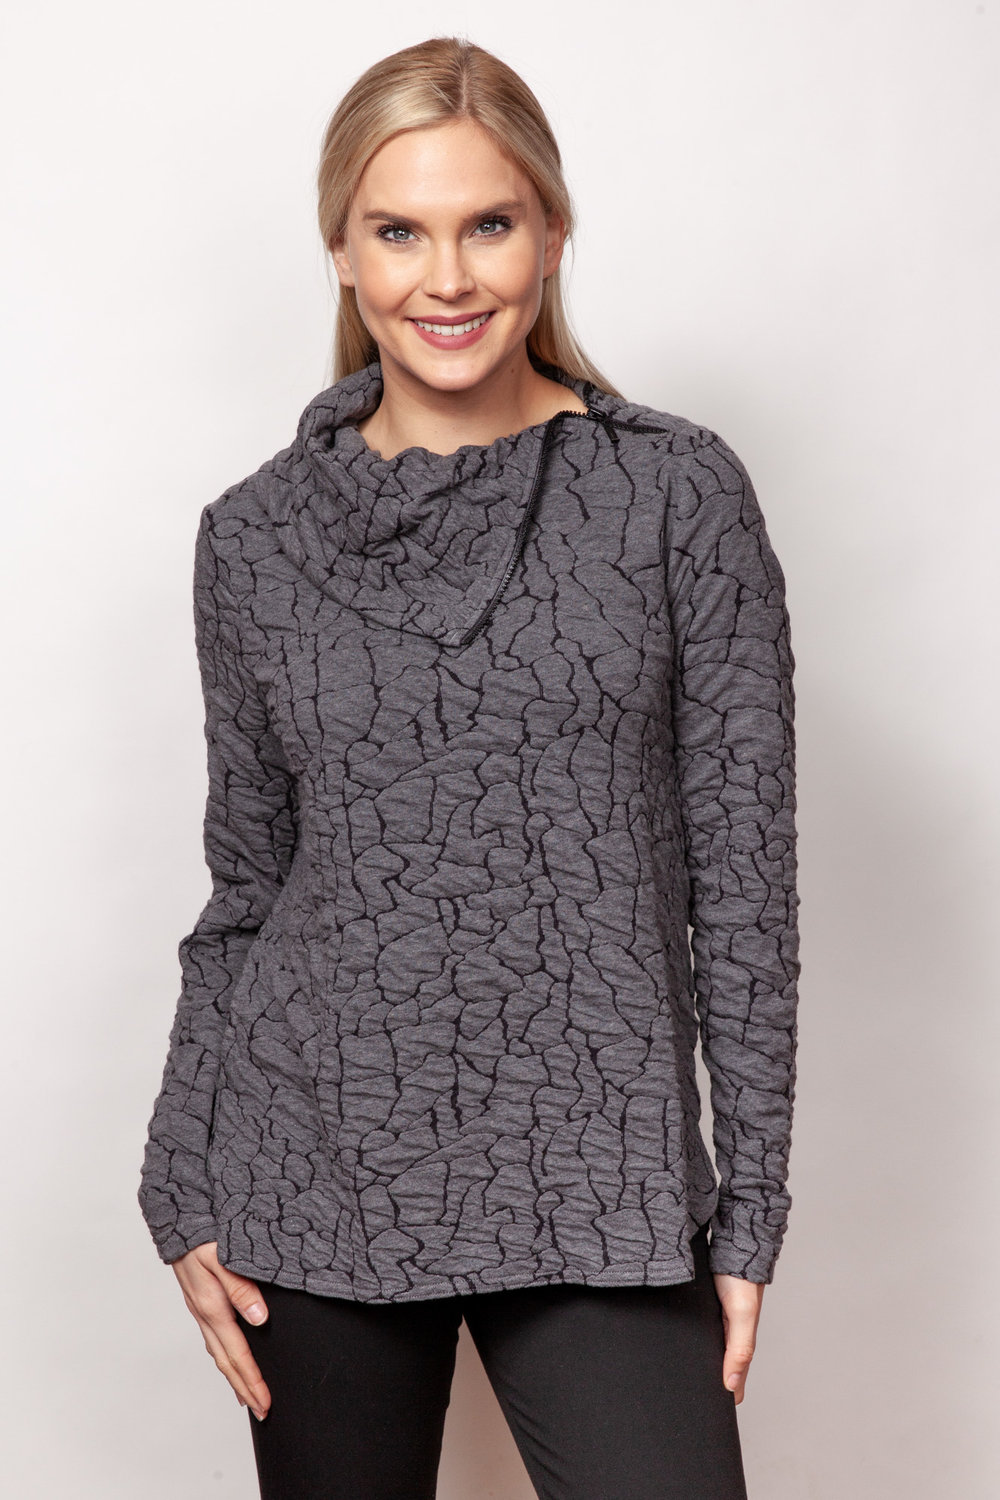 Copy of Style # 80356-19, p 9 <br/>Blister Knits <br/>Colors: Charcoal + 2 others